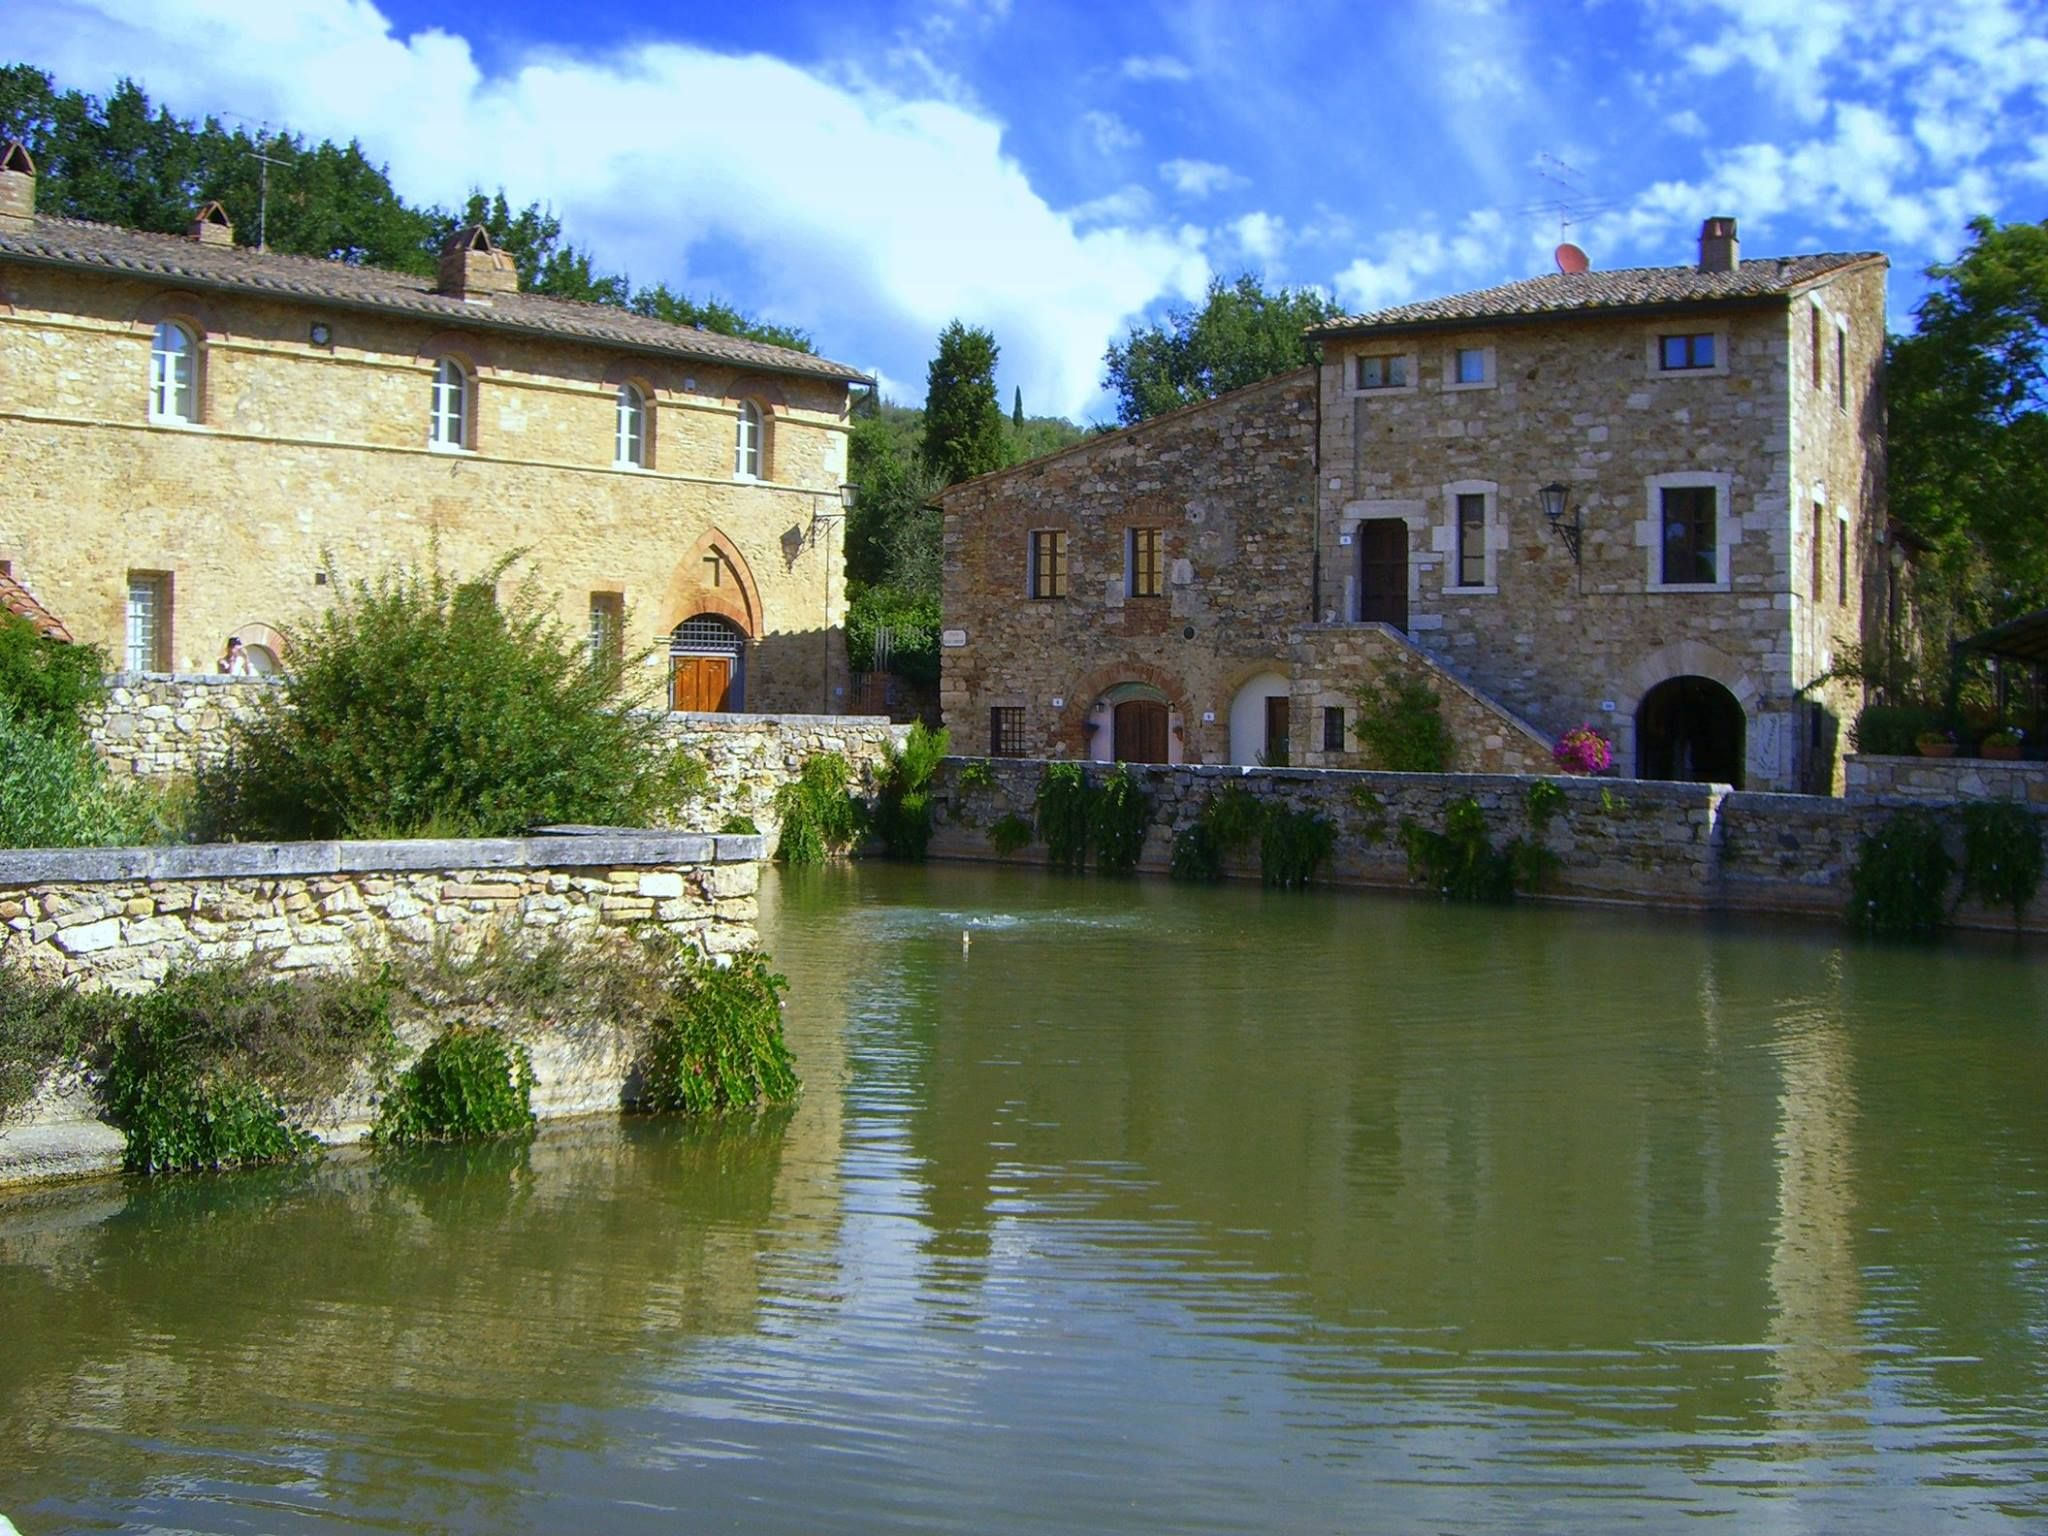 An ancient town with a thermal pool for main square in southern Tuscany: Bagno Vignoni.  http://www.artshoptuscany.com/